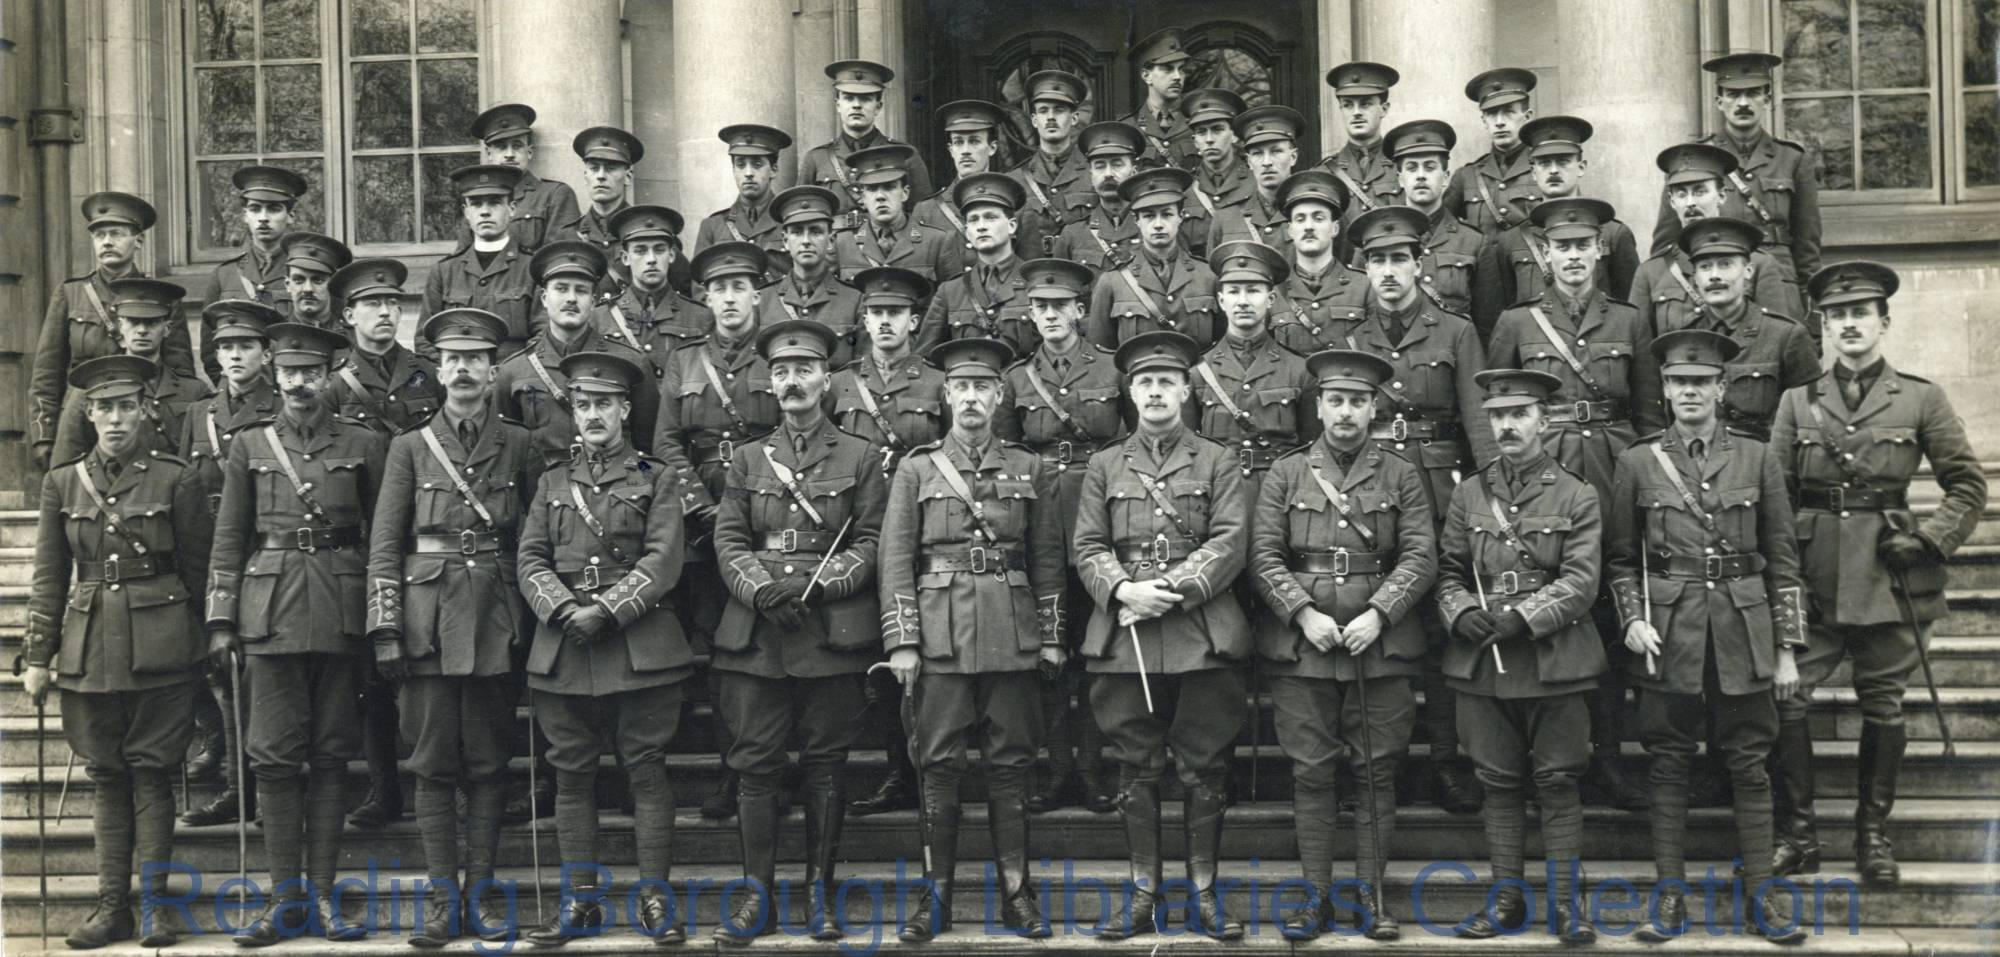 Officers, 7th Battalion, Royal Berkshire Regiment, Shire Hall, The Forbury, Reading, February 1915.